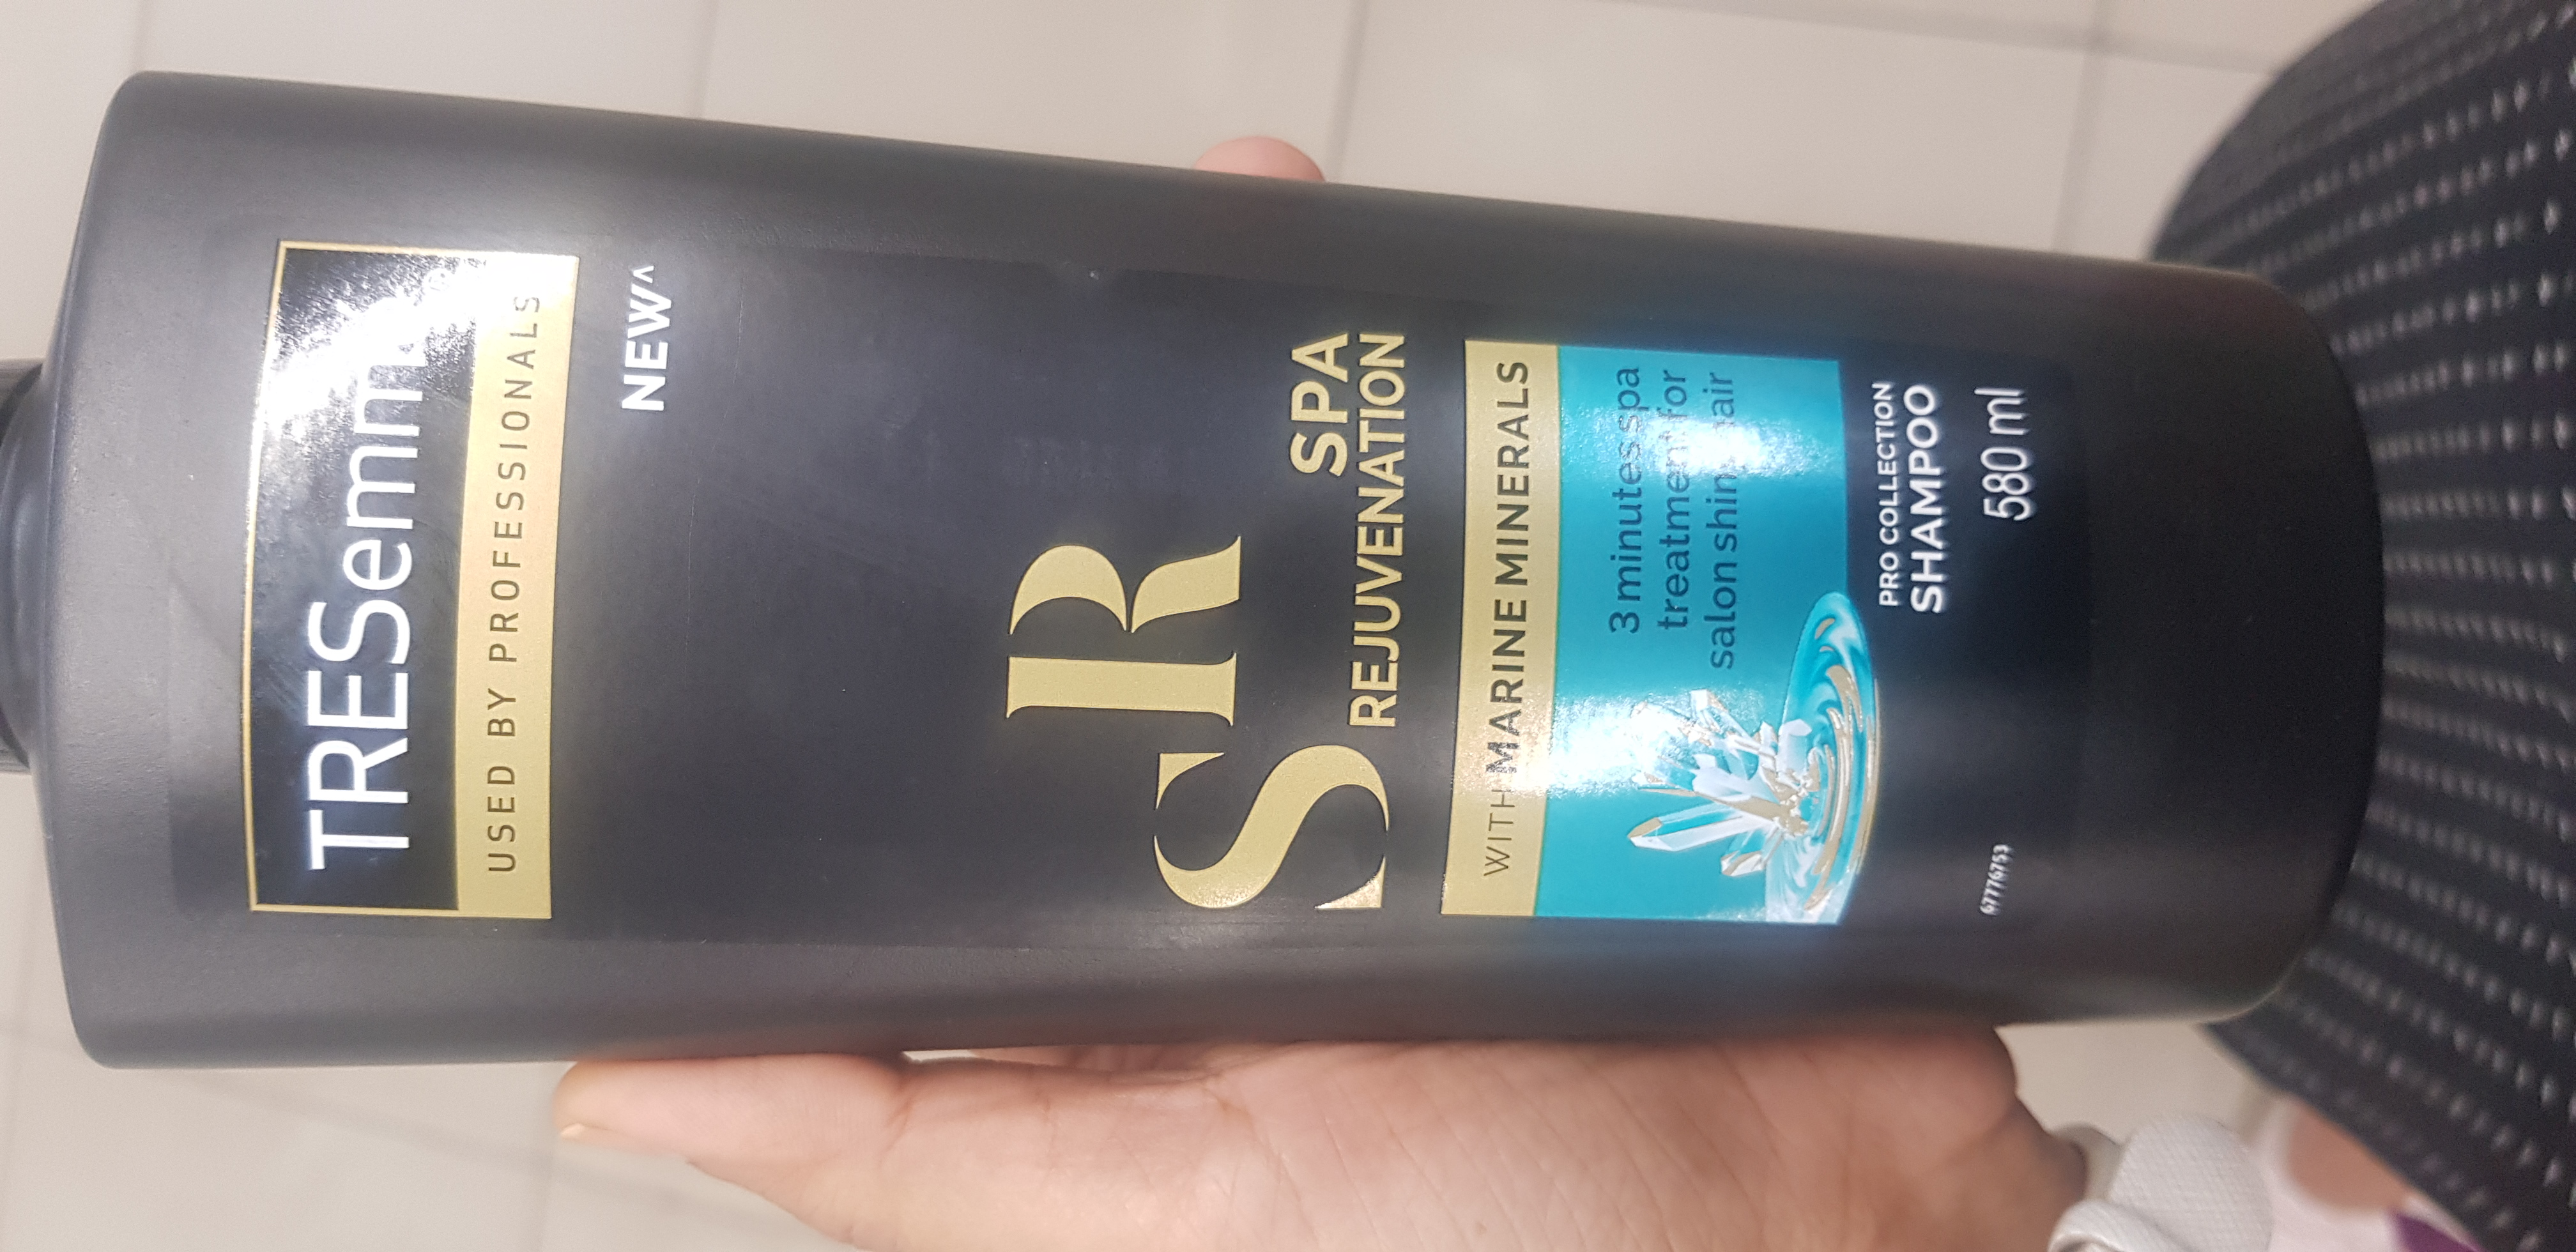 Tresemme Hair Spa Rejuvenation Shampoo -Good for hair smoothening-By avyuktha